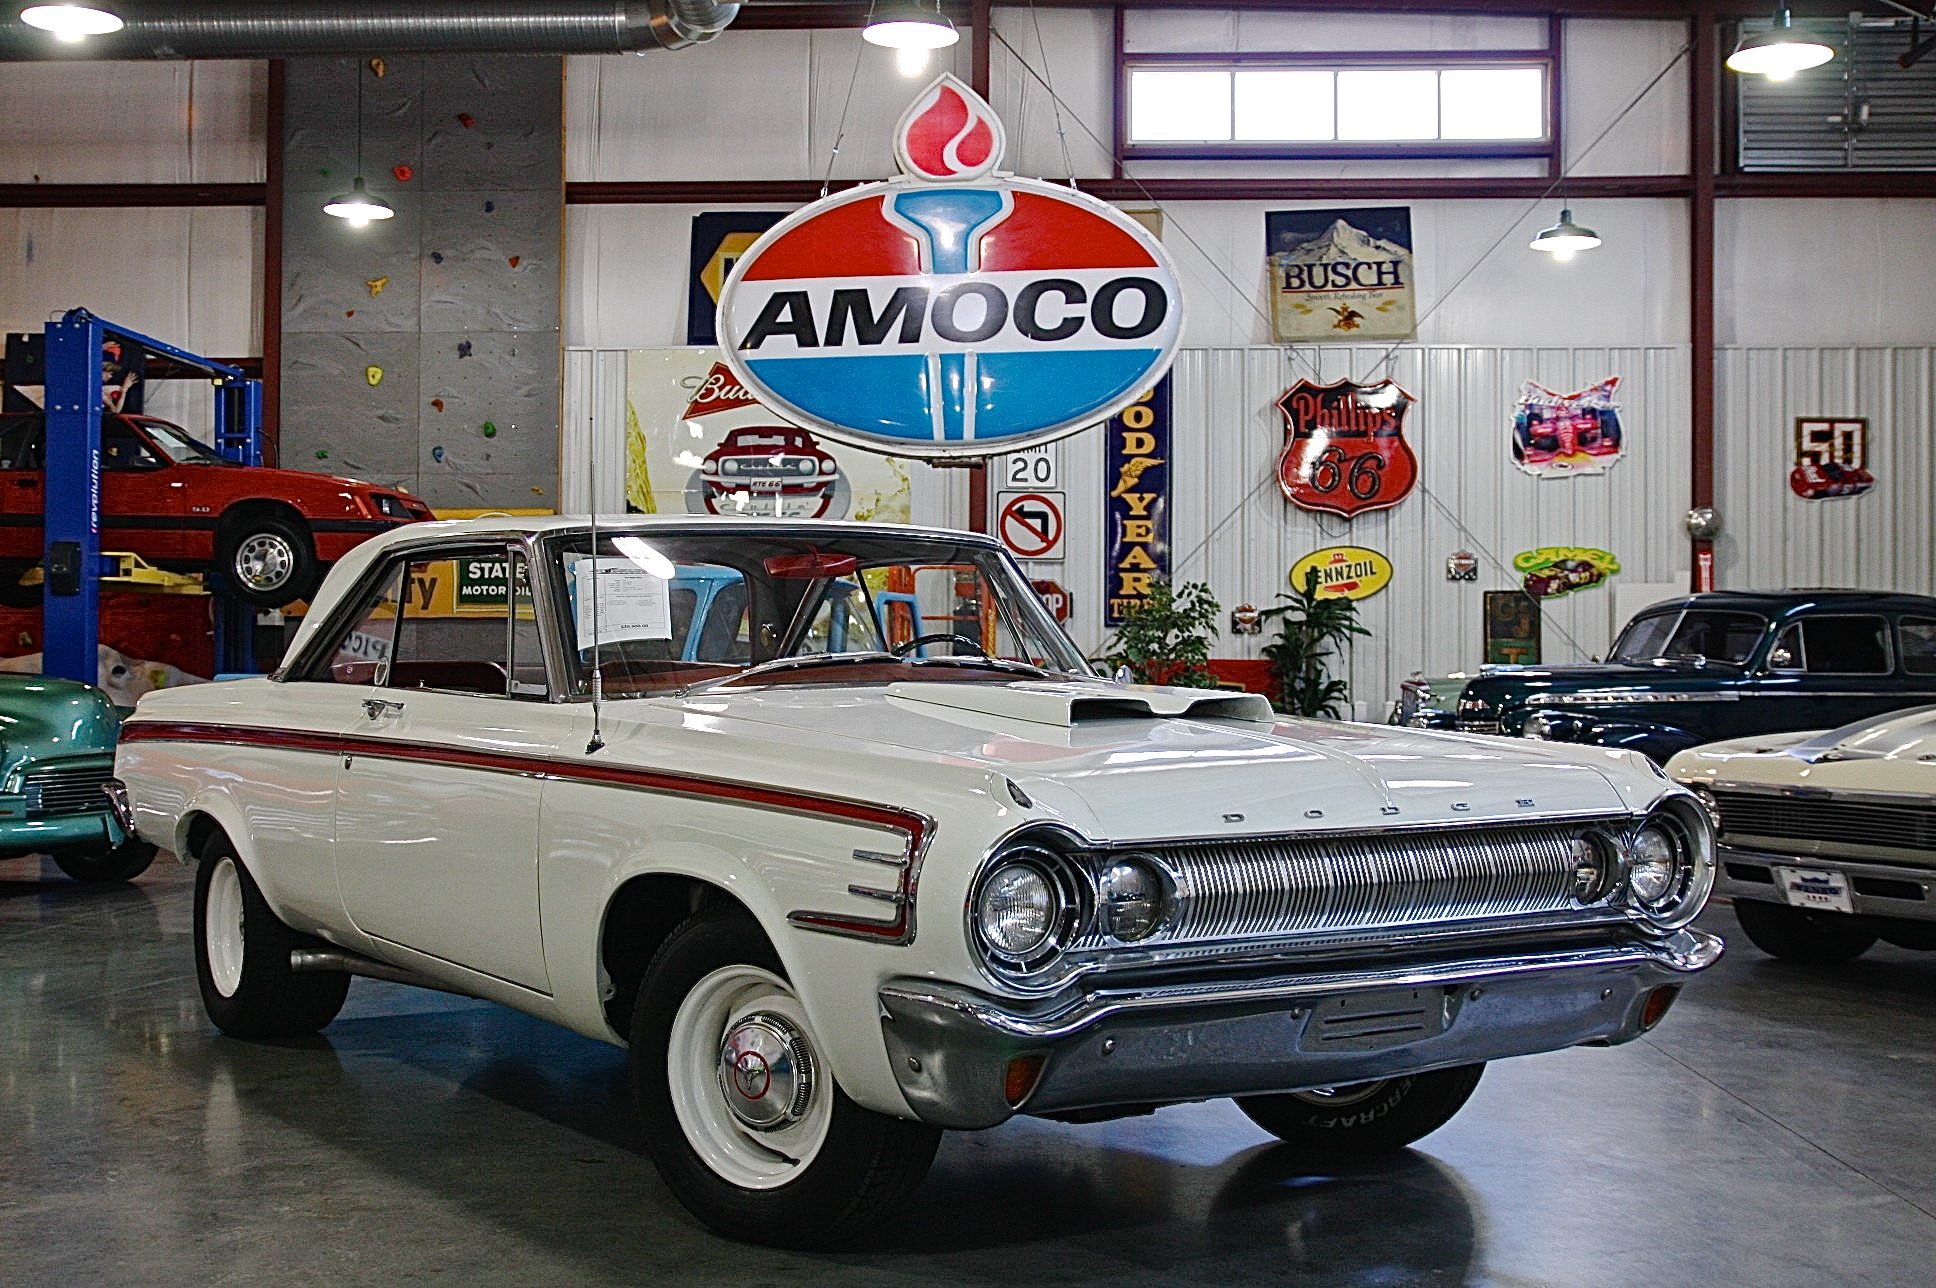 1964 Dodge Polara Max Wedge for Sale | Mopar Blog